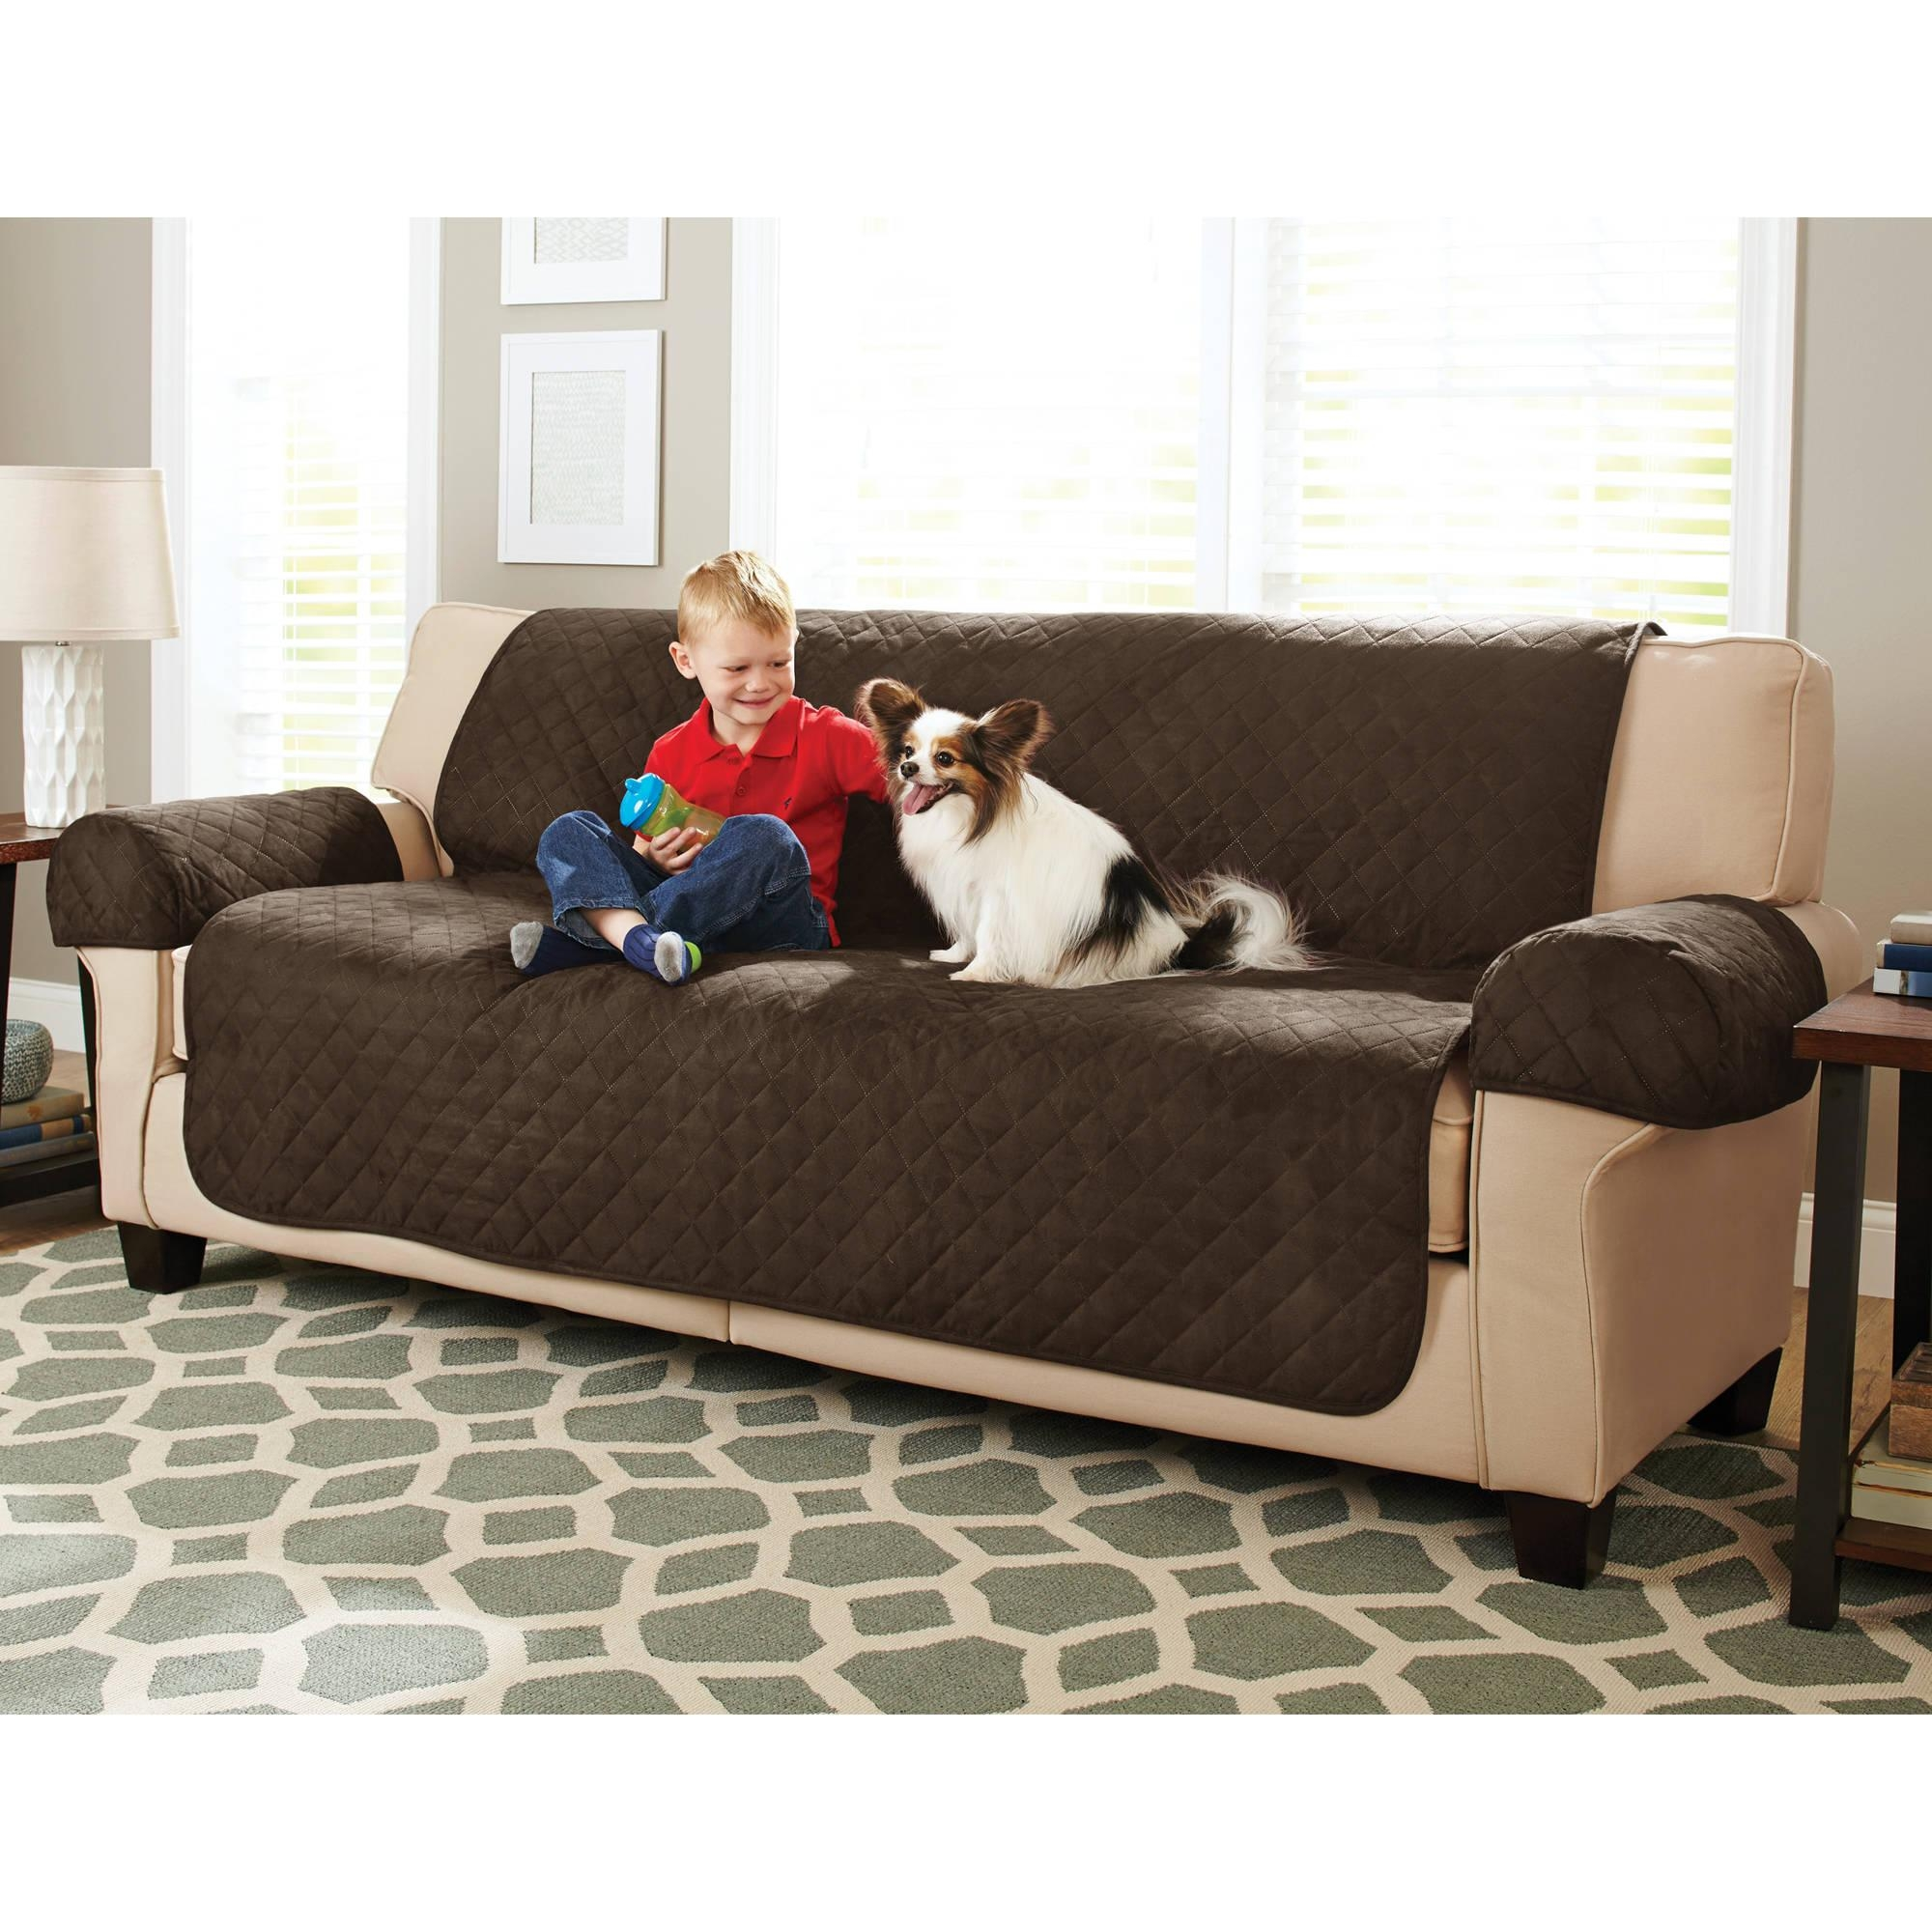 Better Homes And Gardens Waterproof Non Slip Faux Suede Pet With Sofas For Dogs (Image 2 of 20)